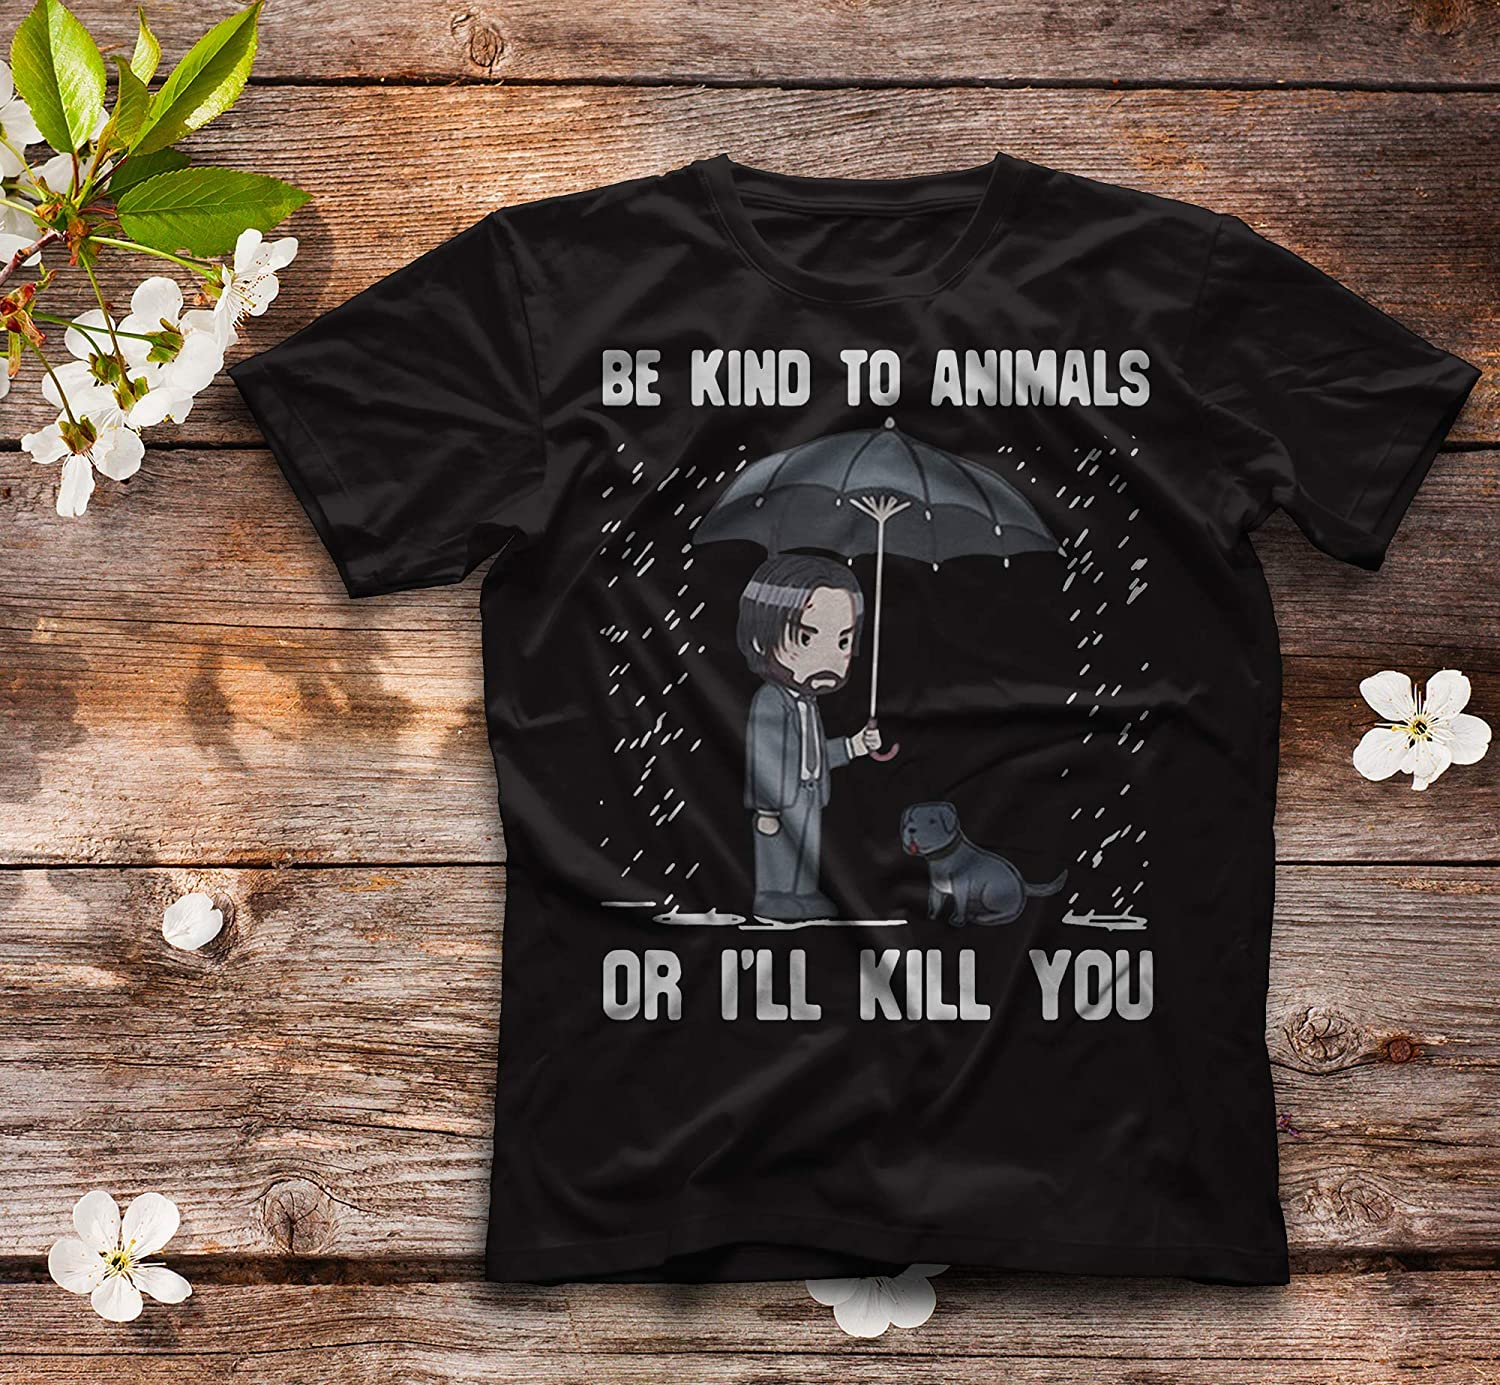 Be Kind To Animals Or Ill Kill You T-Shirt Funny Dog Shirt